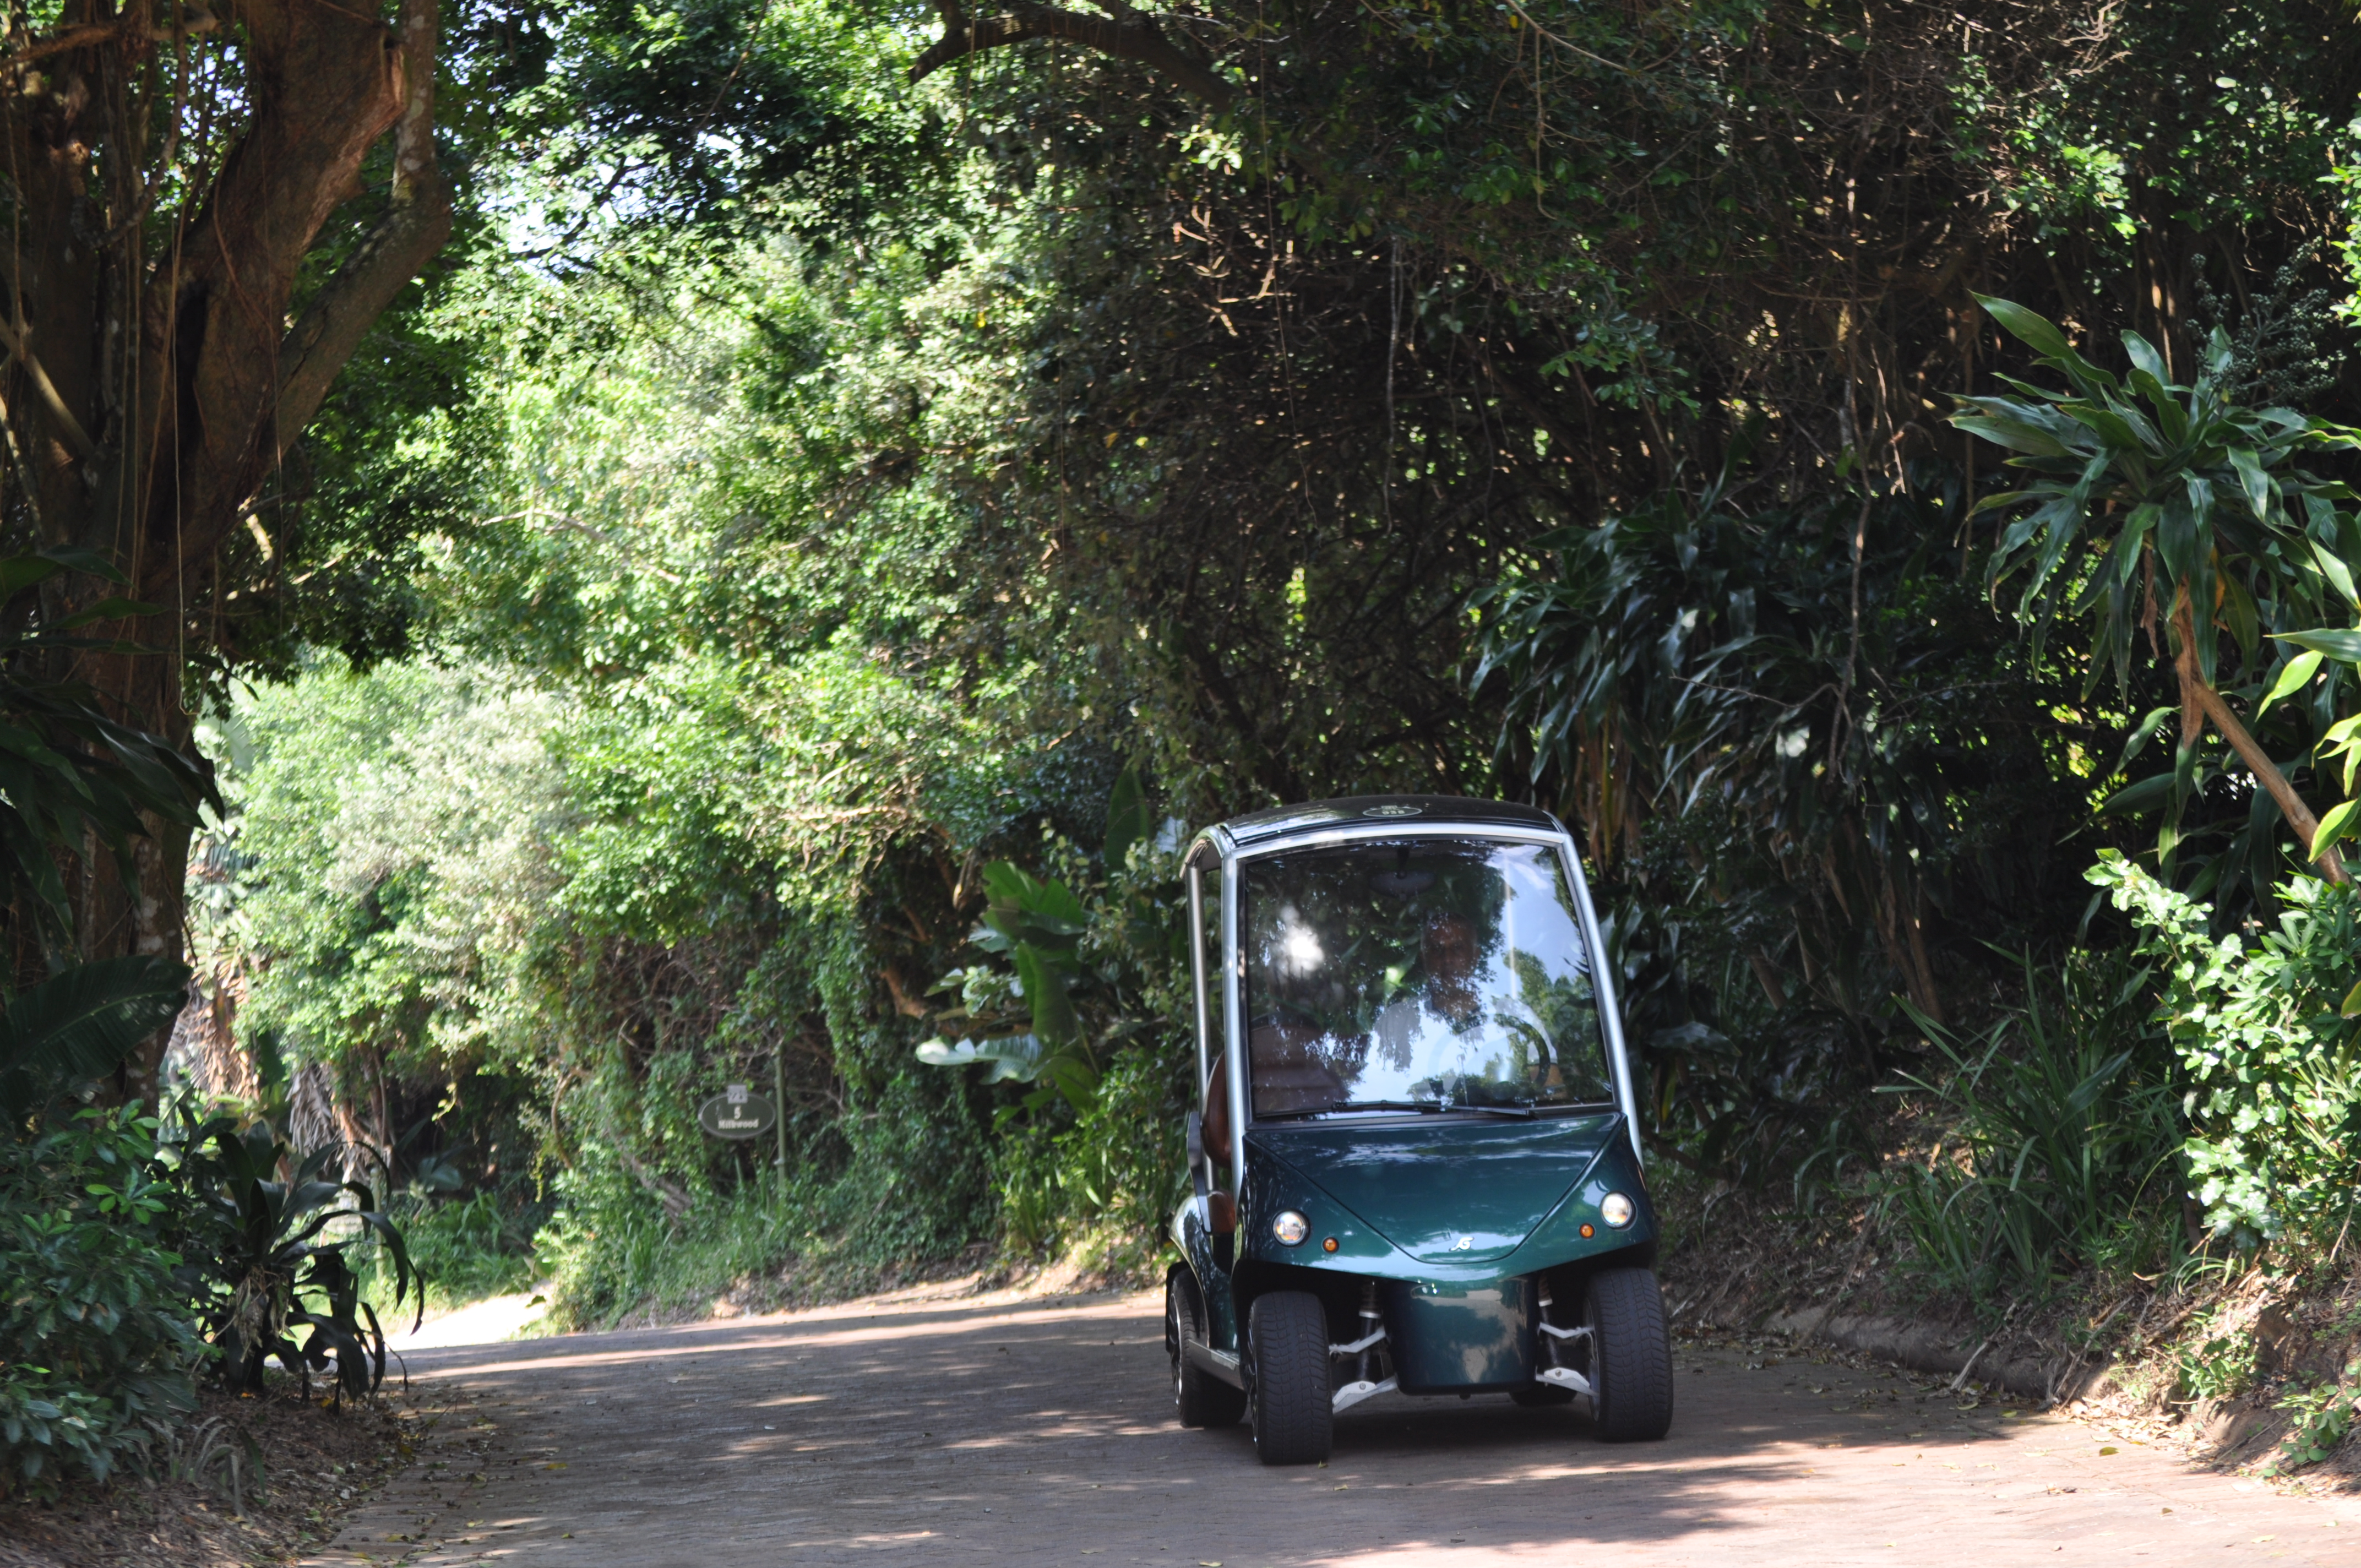 Golf-carting through the forest estate